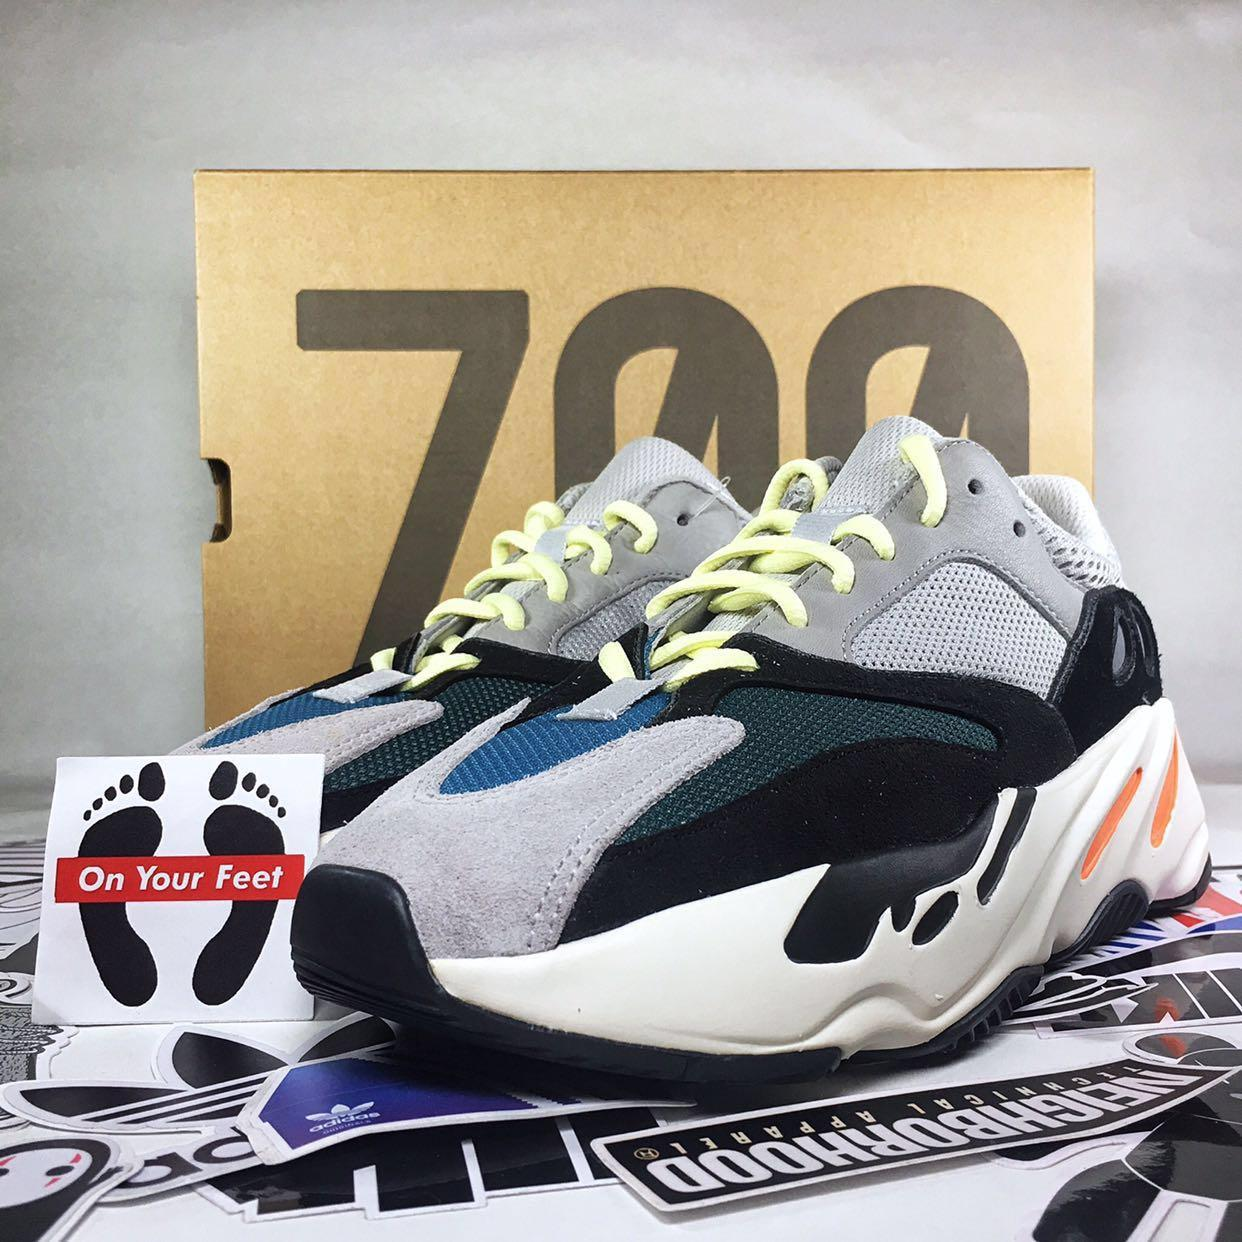 purchase cheap 996dc 8f8a8 SELLING: Adidas Yeezy Boost 700 V1 OG 'Waverunners', Men's ...